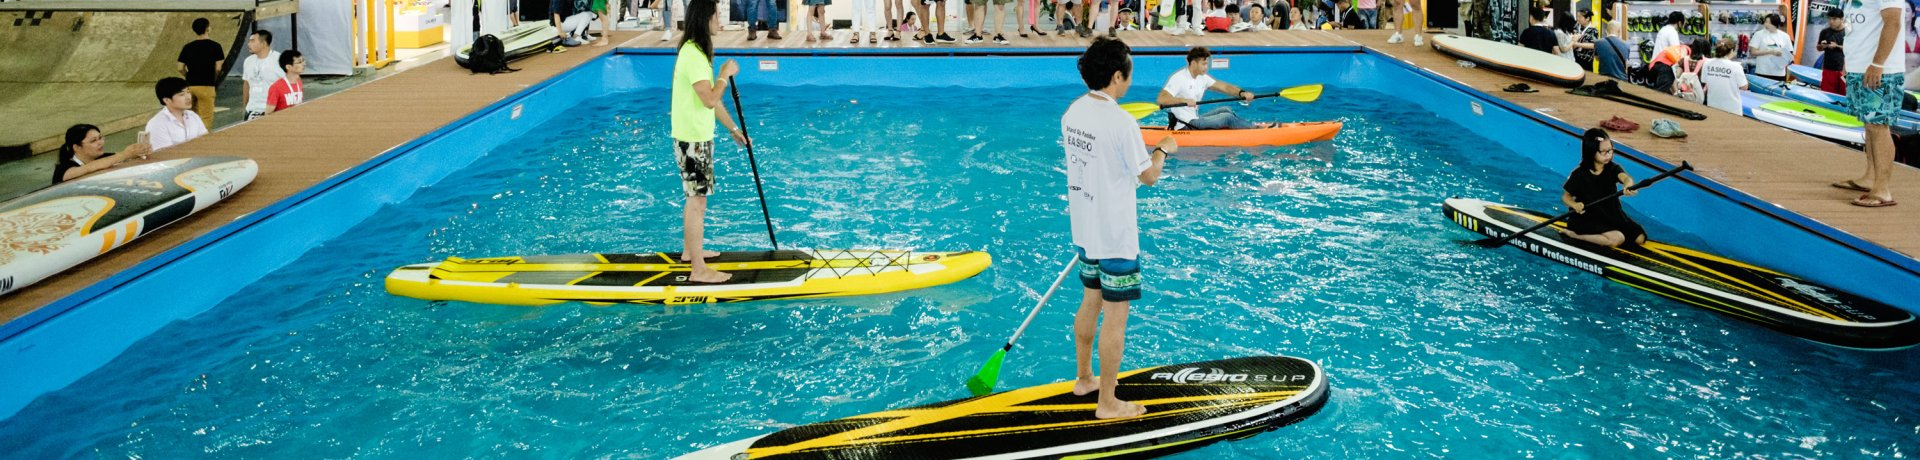 ISPO Shanghai Water Sports area, participants do stand-up paddling